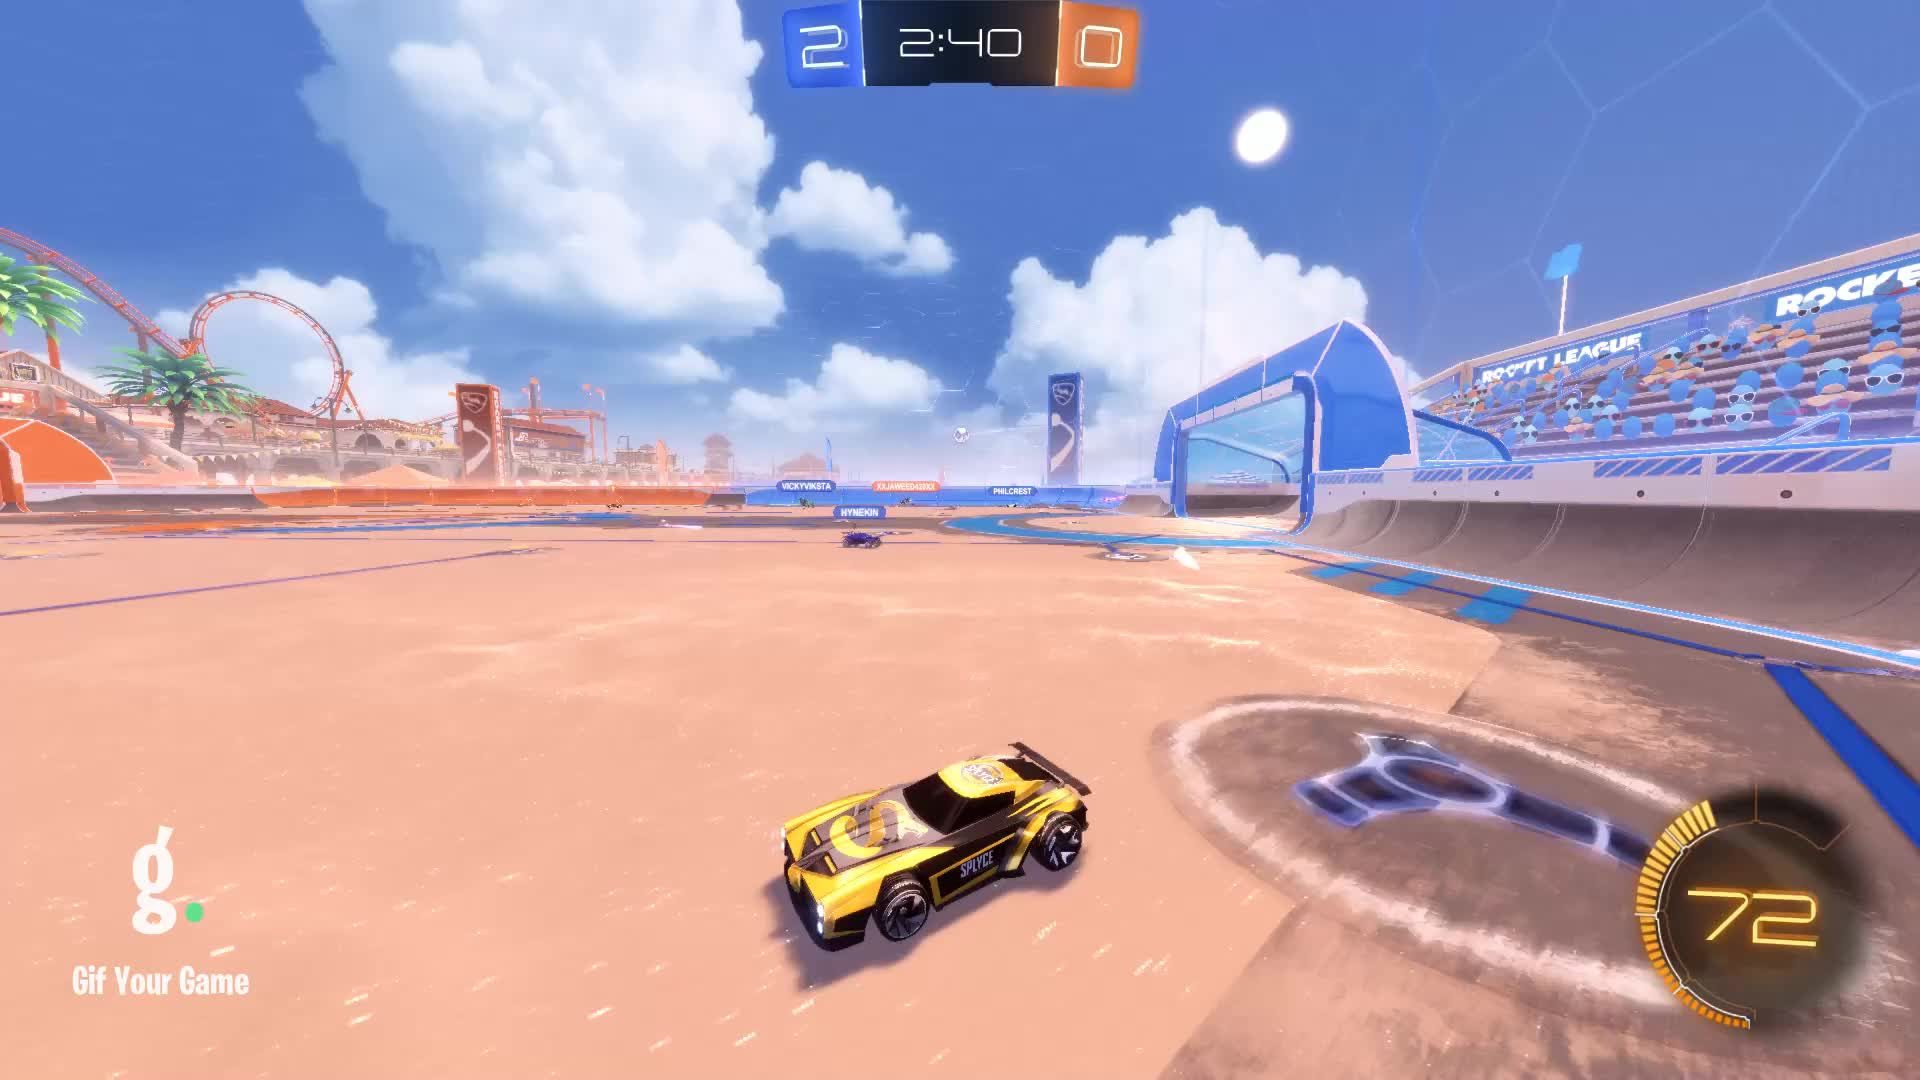 Gif Your Game, GifYourGame, Goal, Rieces, Rocket League, RocketLeague, Goal 3: Rieces GIFs